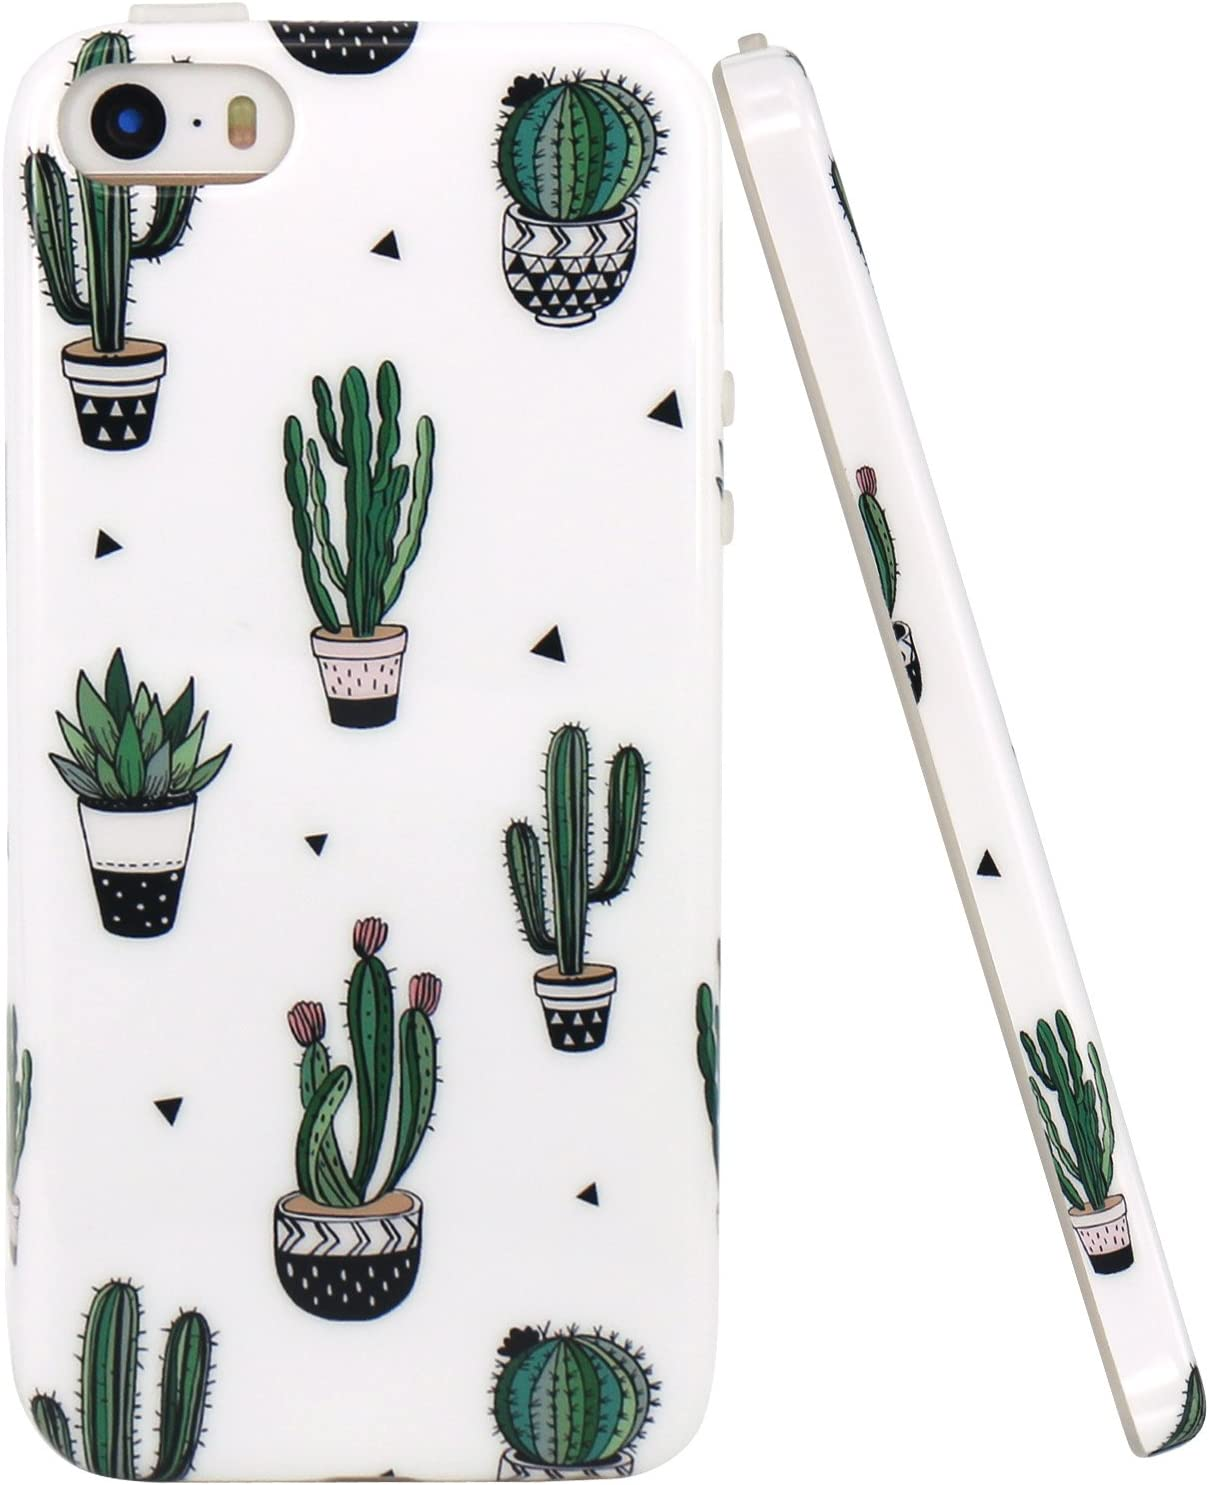 JAHOLAN iPhone 5 Case, iPhone 5S case, Green Cactus Design Clear Bumper Glossy TPU Soft Rubber Silicone Cover Phone Case Compatible with iPhone 5 5S